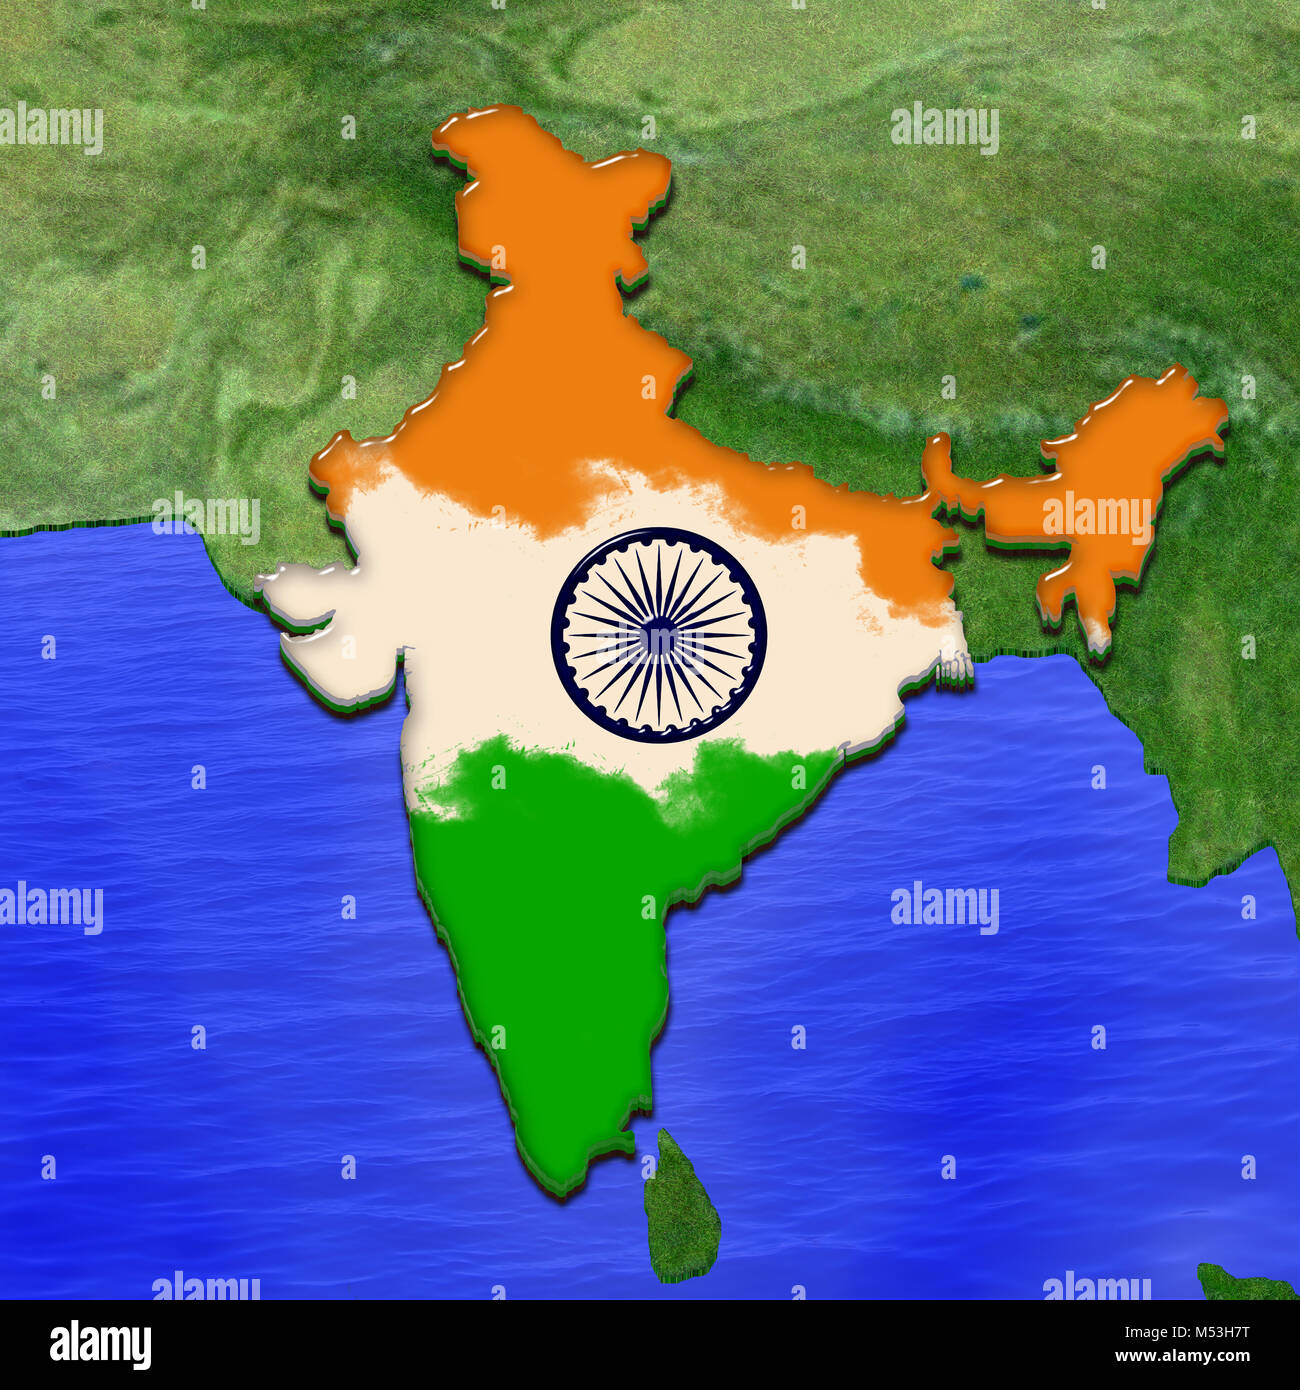 colour picture of indian map India Map High Resolution Stock Photography And Images Alamy colour picture of indian map